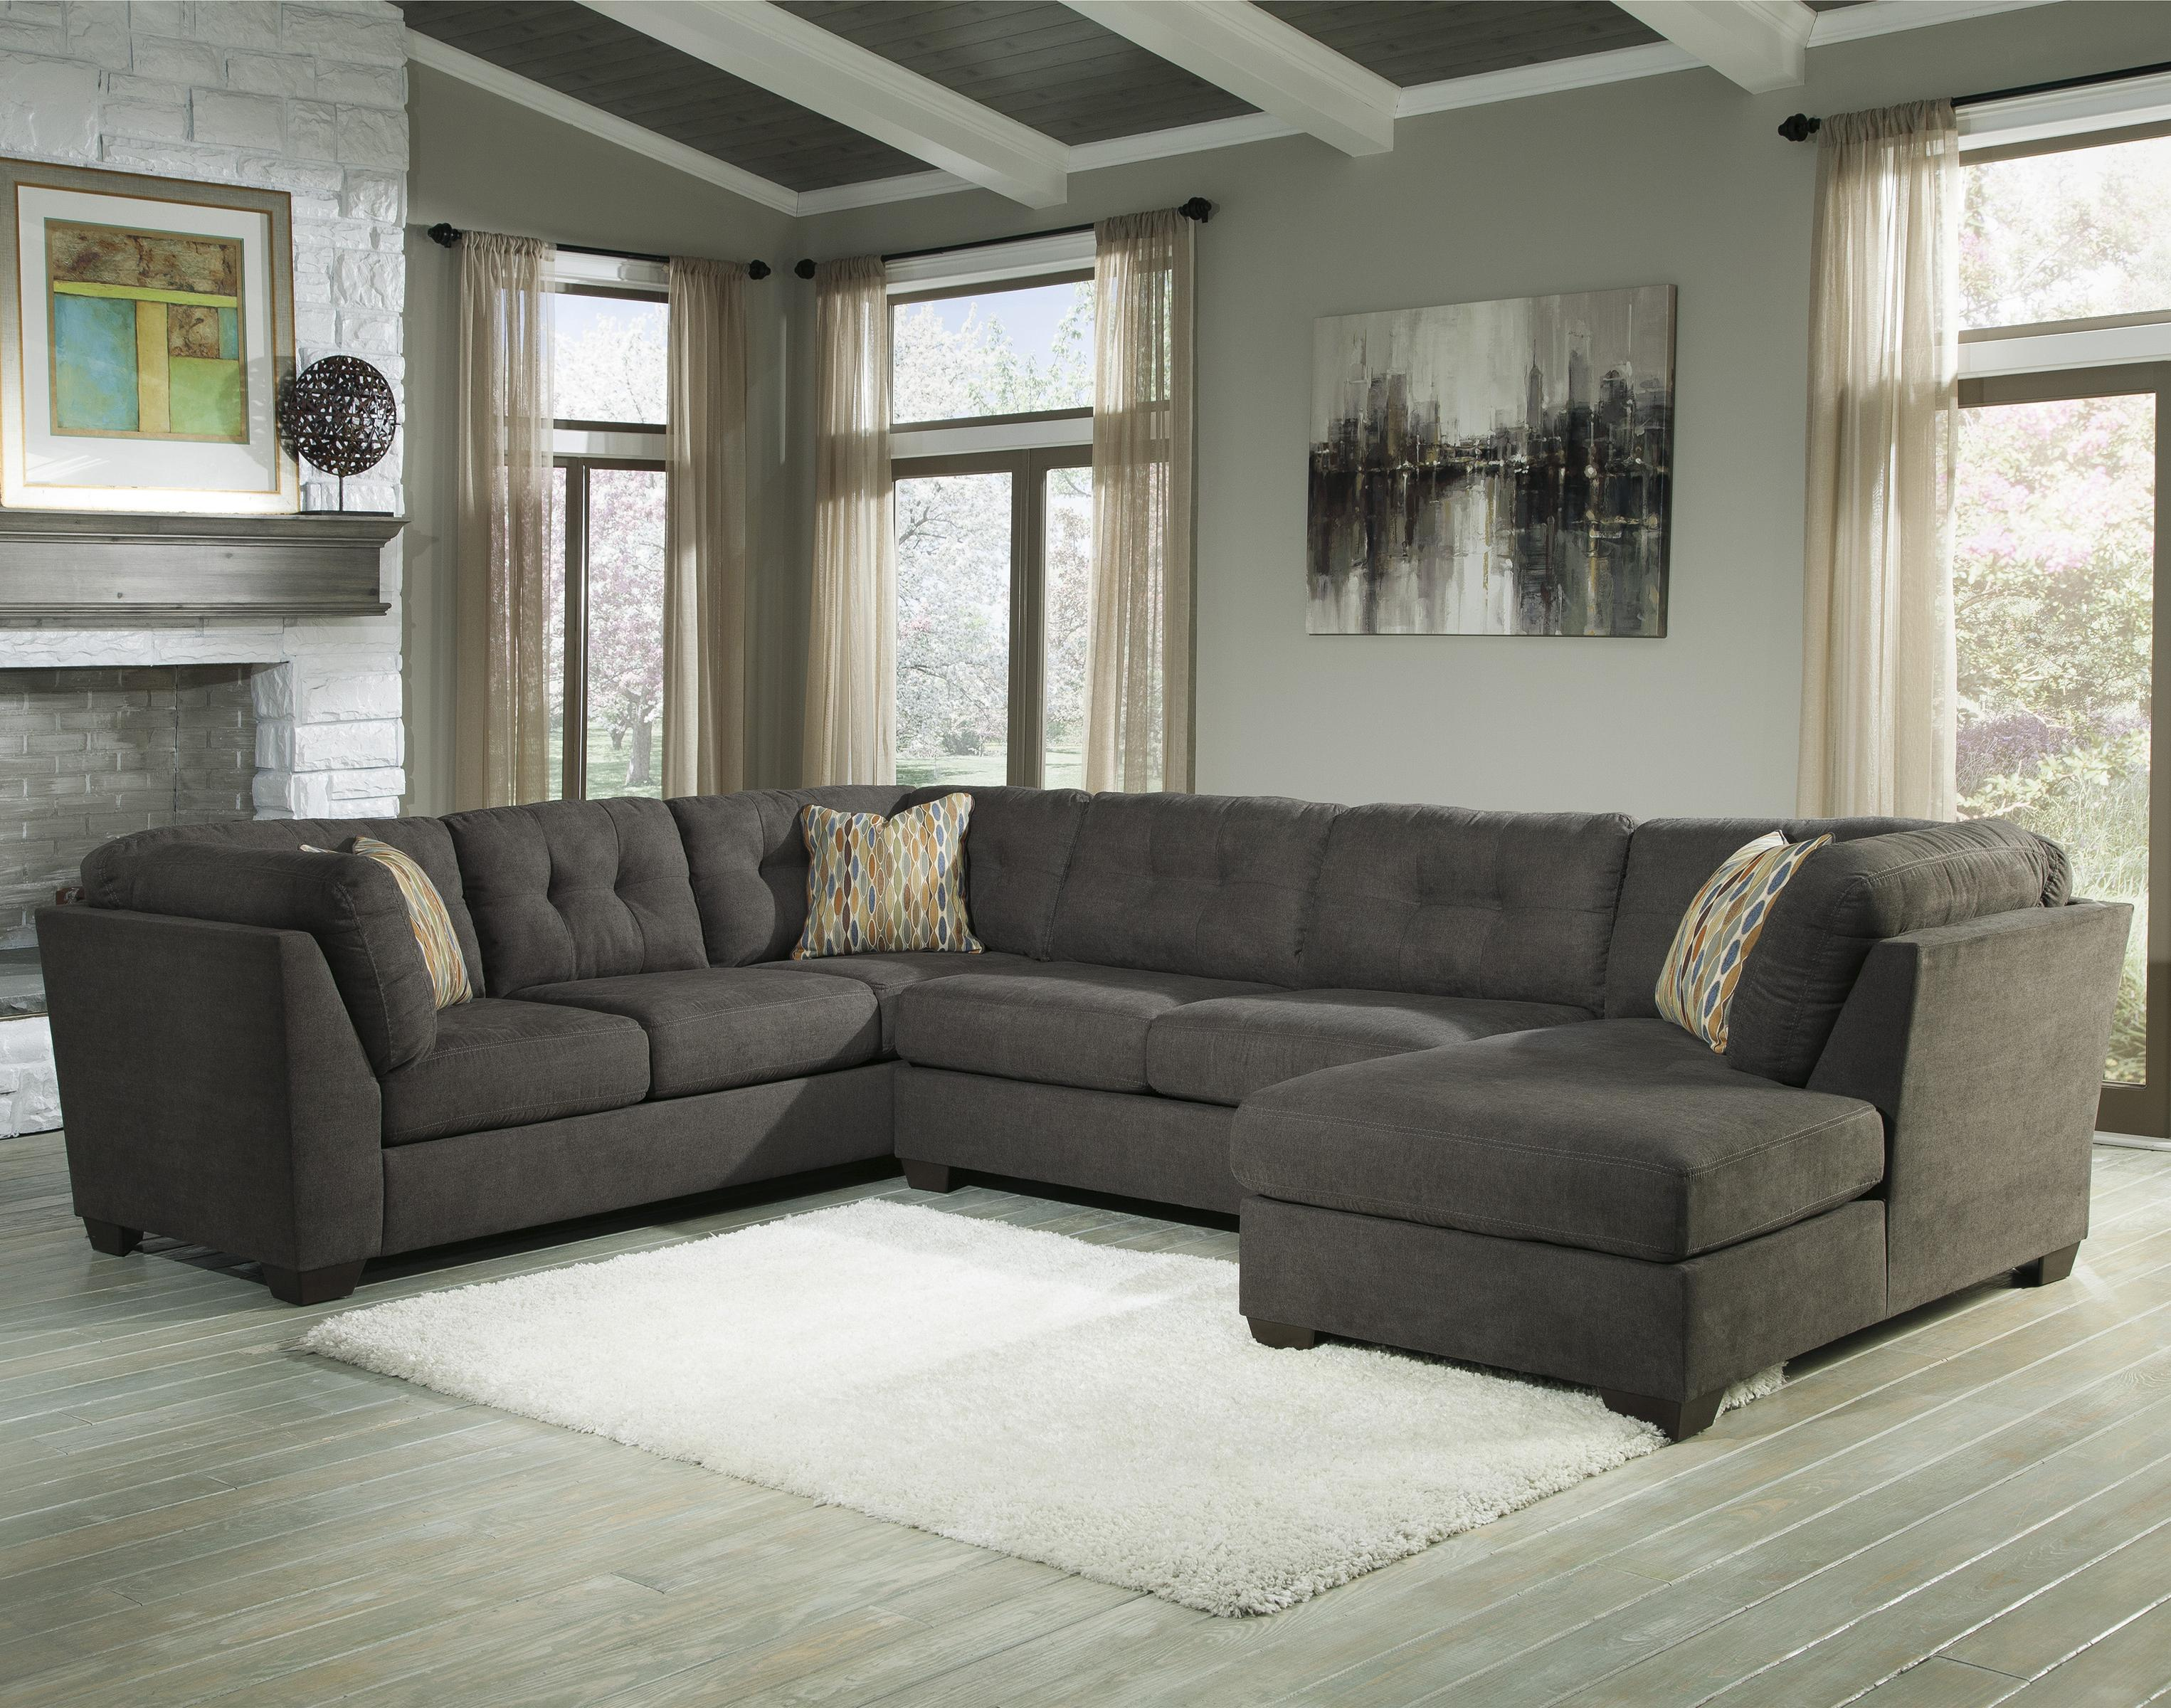 with for fill furniture sofas sofa room ideas gray sectional reclining cheap grain comfy club decorating home full costco modern chaise couch your sams modular sectionals living leather